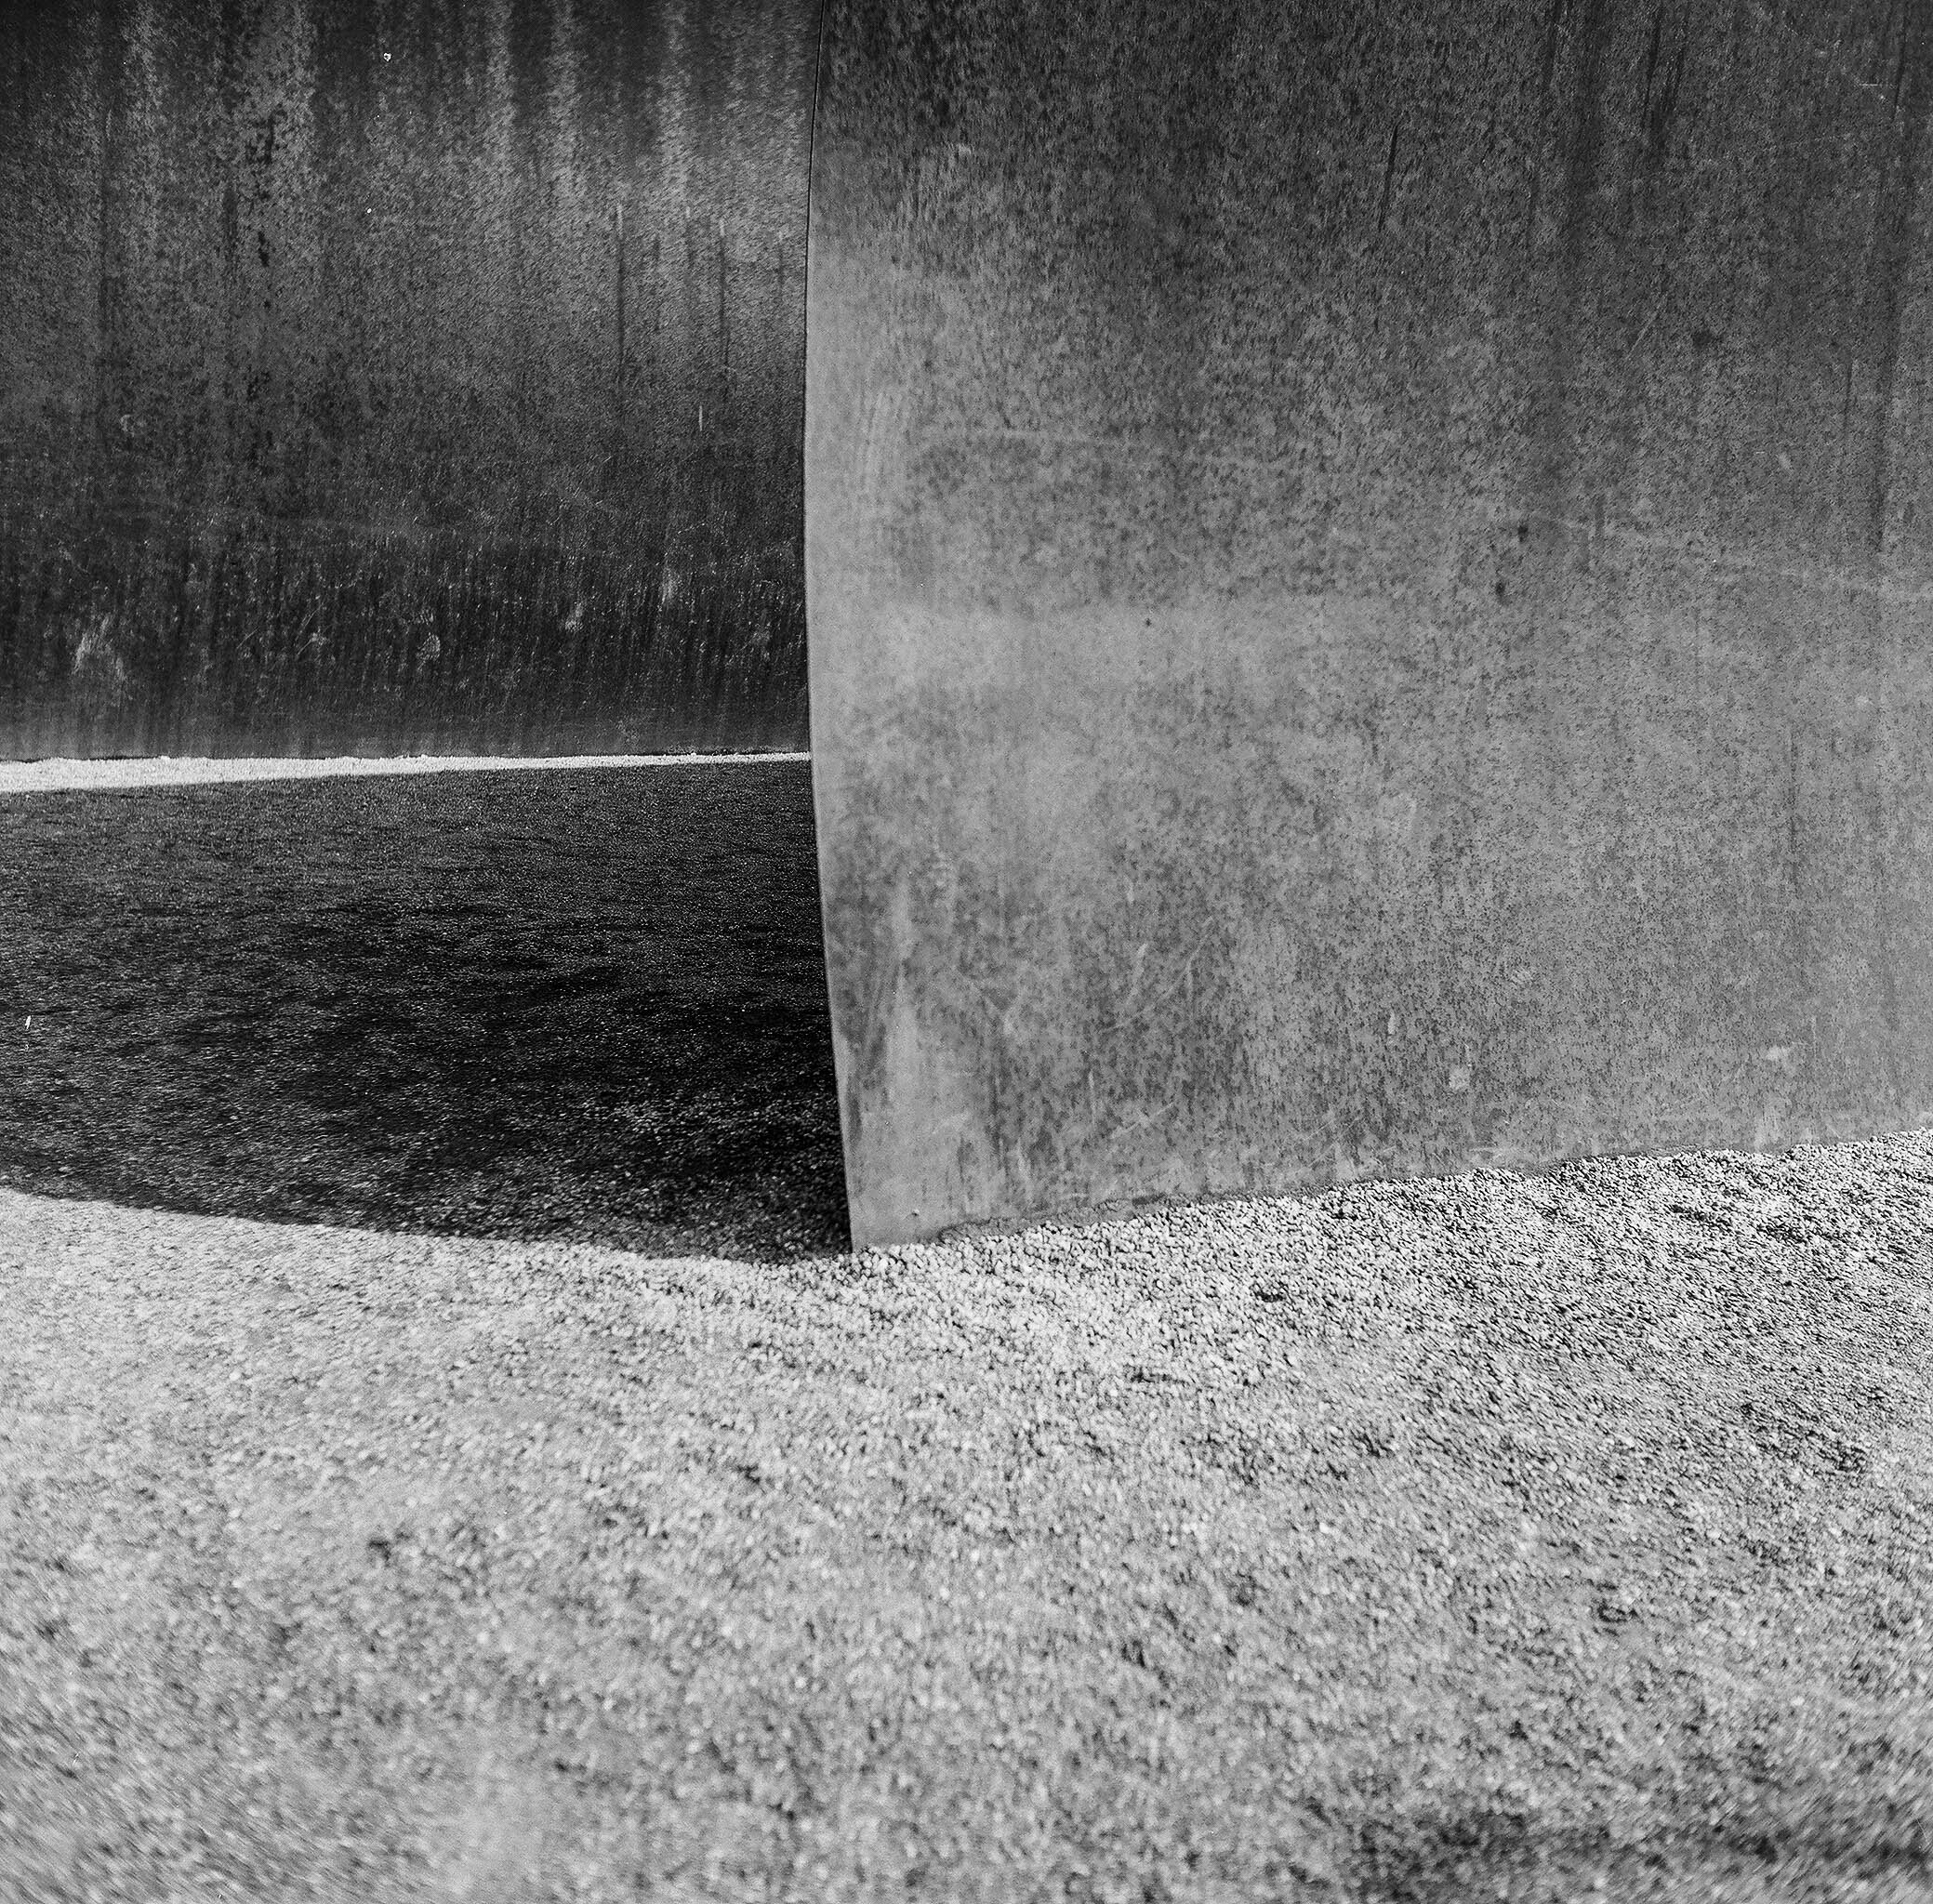 Detail of Richard Serra Sculpture